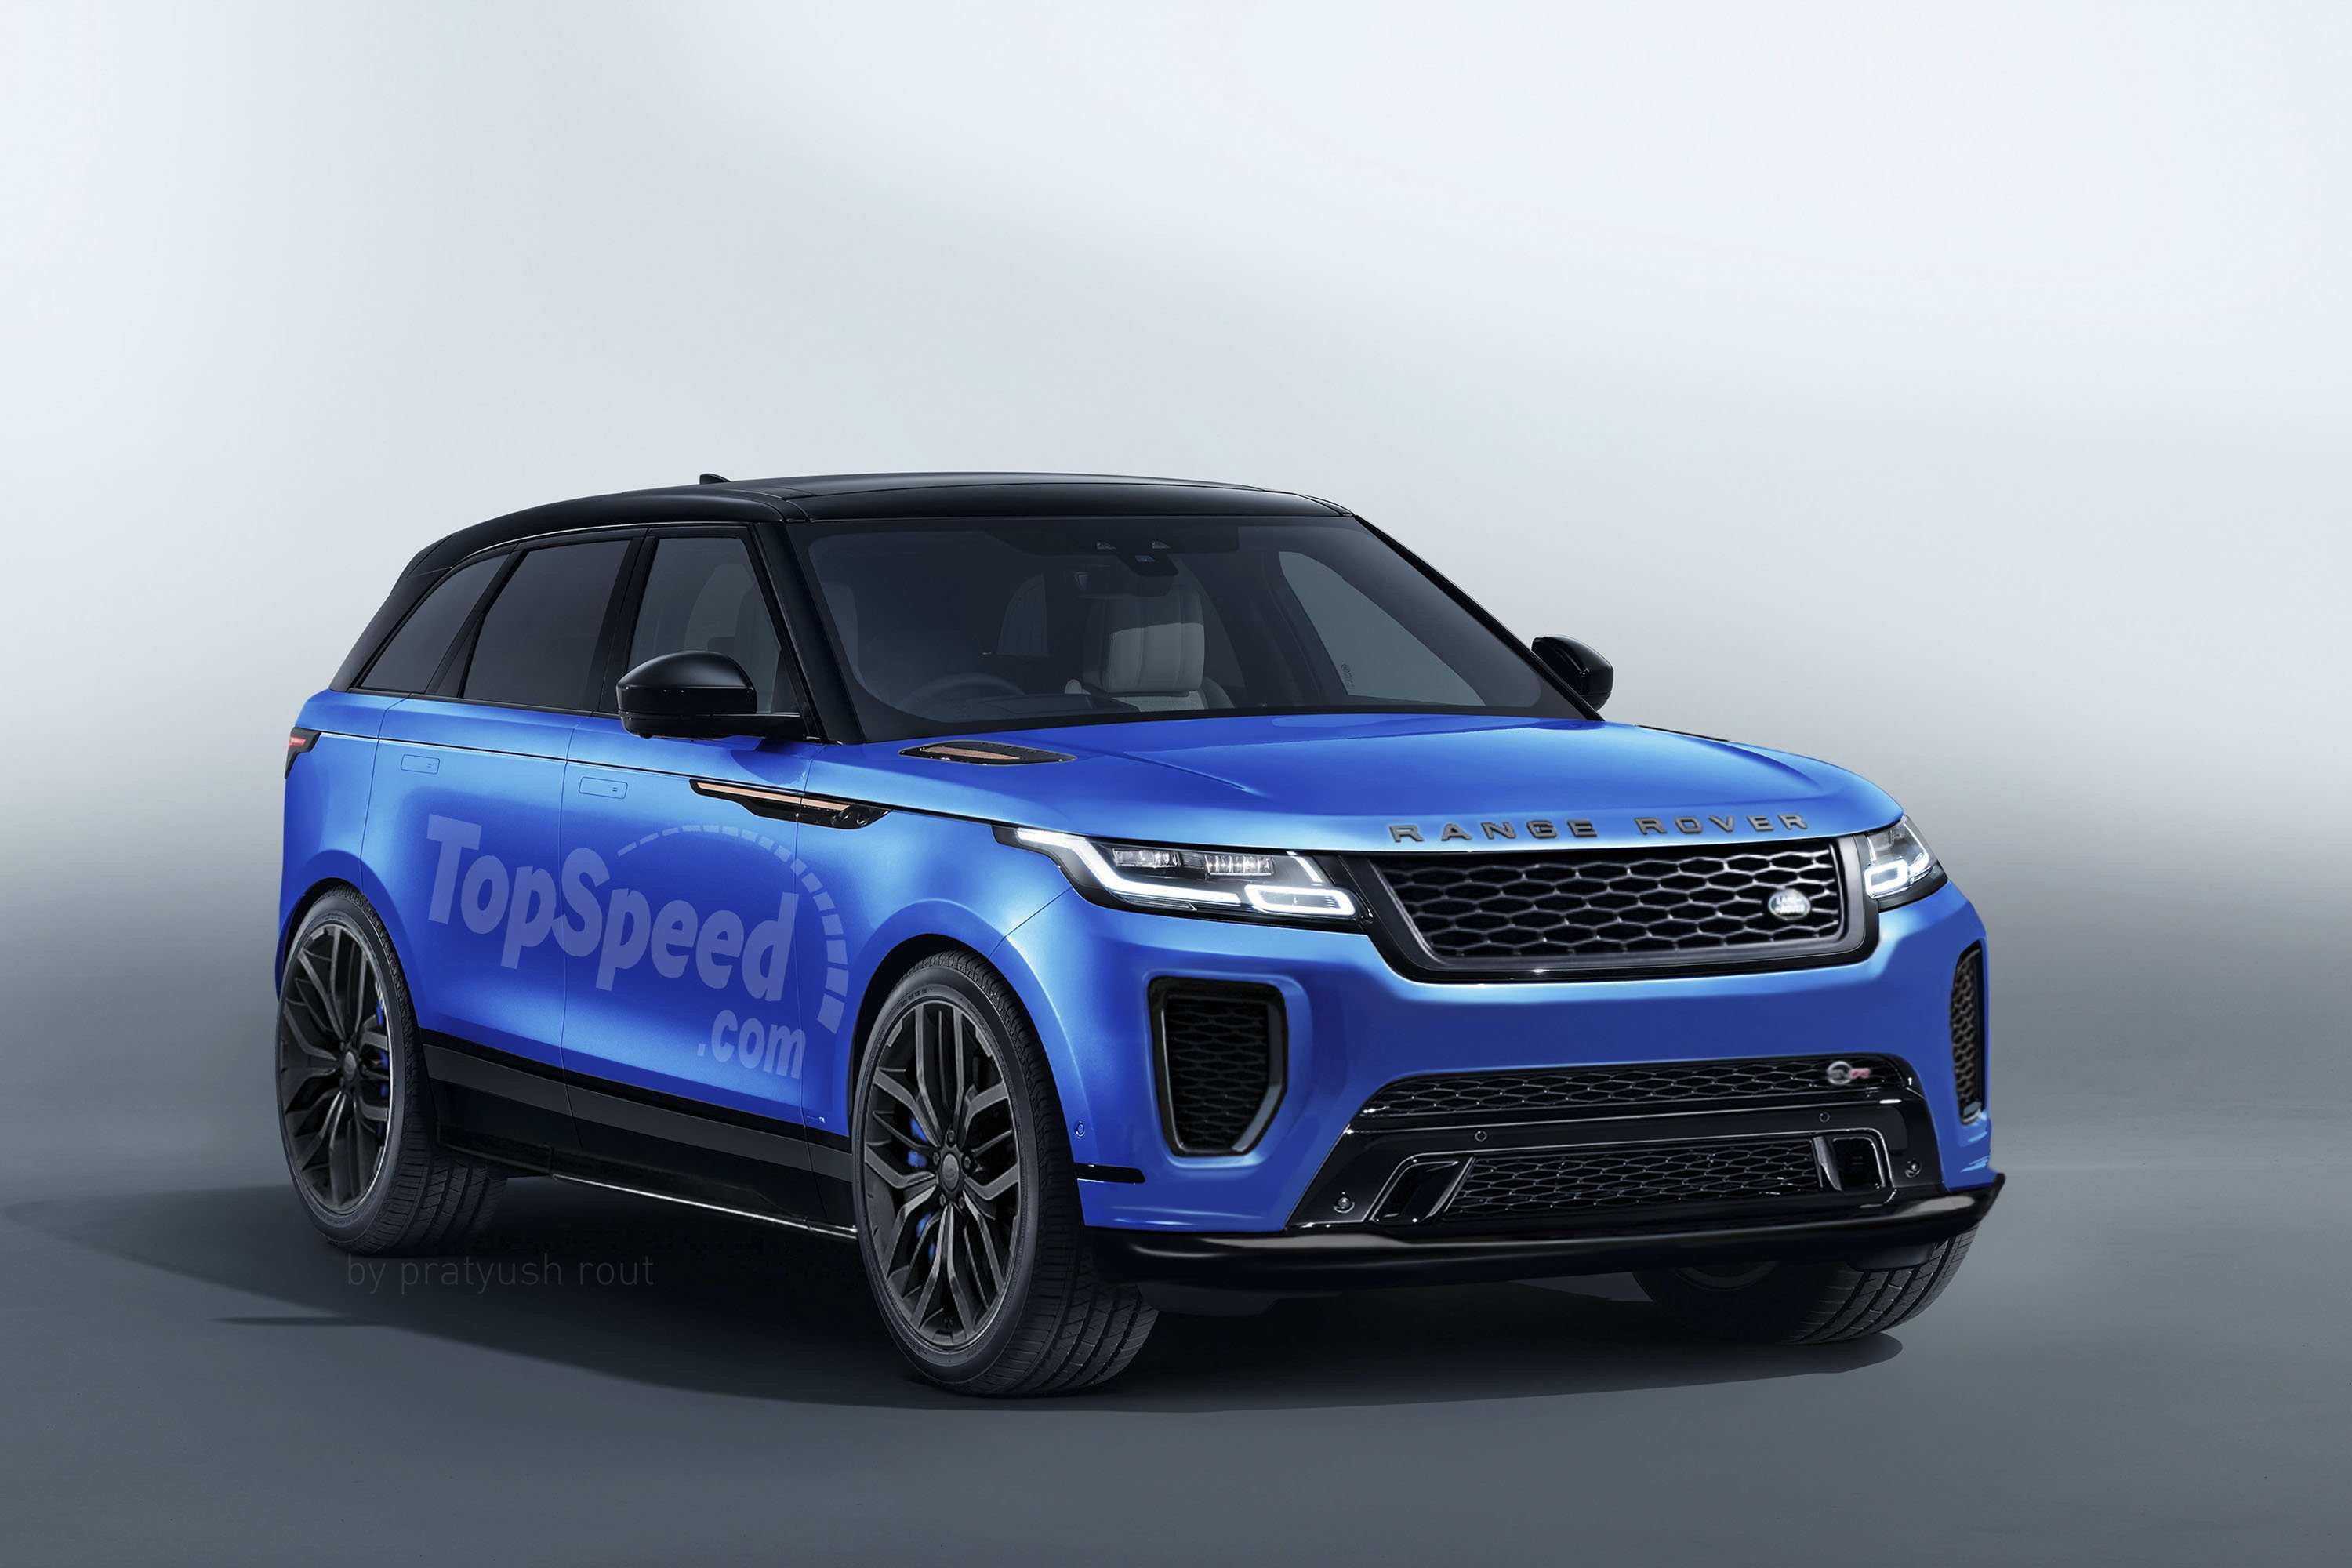 57 Gallery of 2019 Land Rover Svr Price and Review with 2019 Land Rover Svr